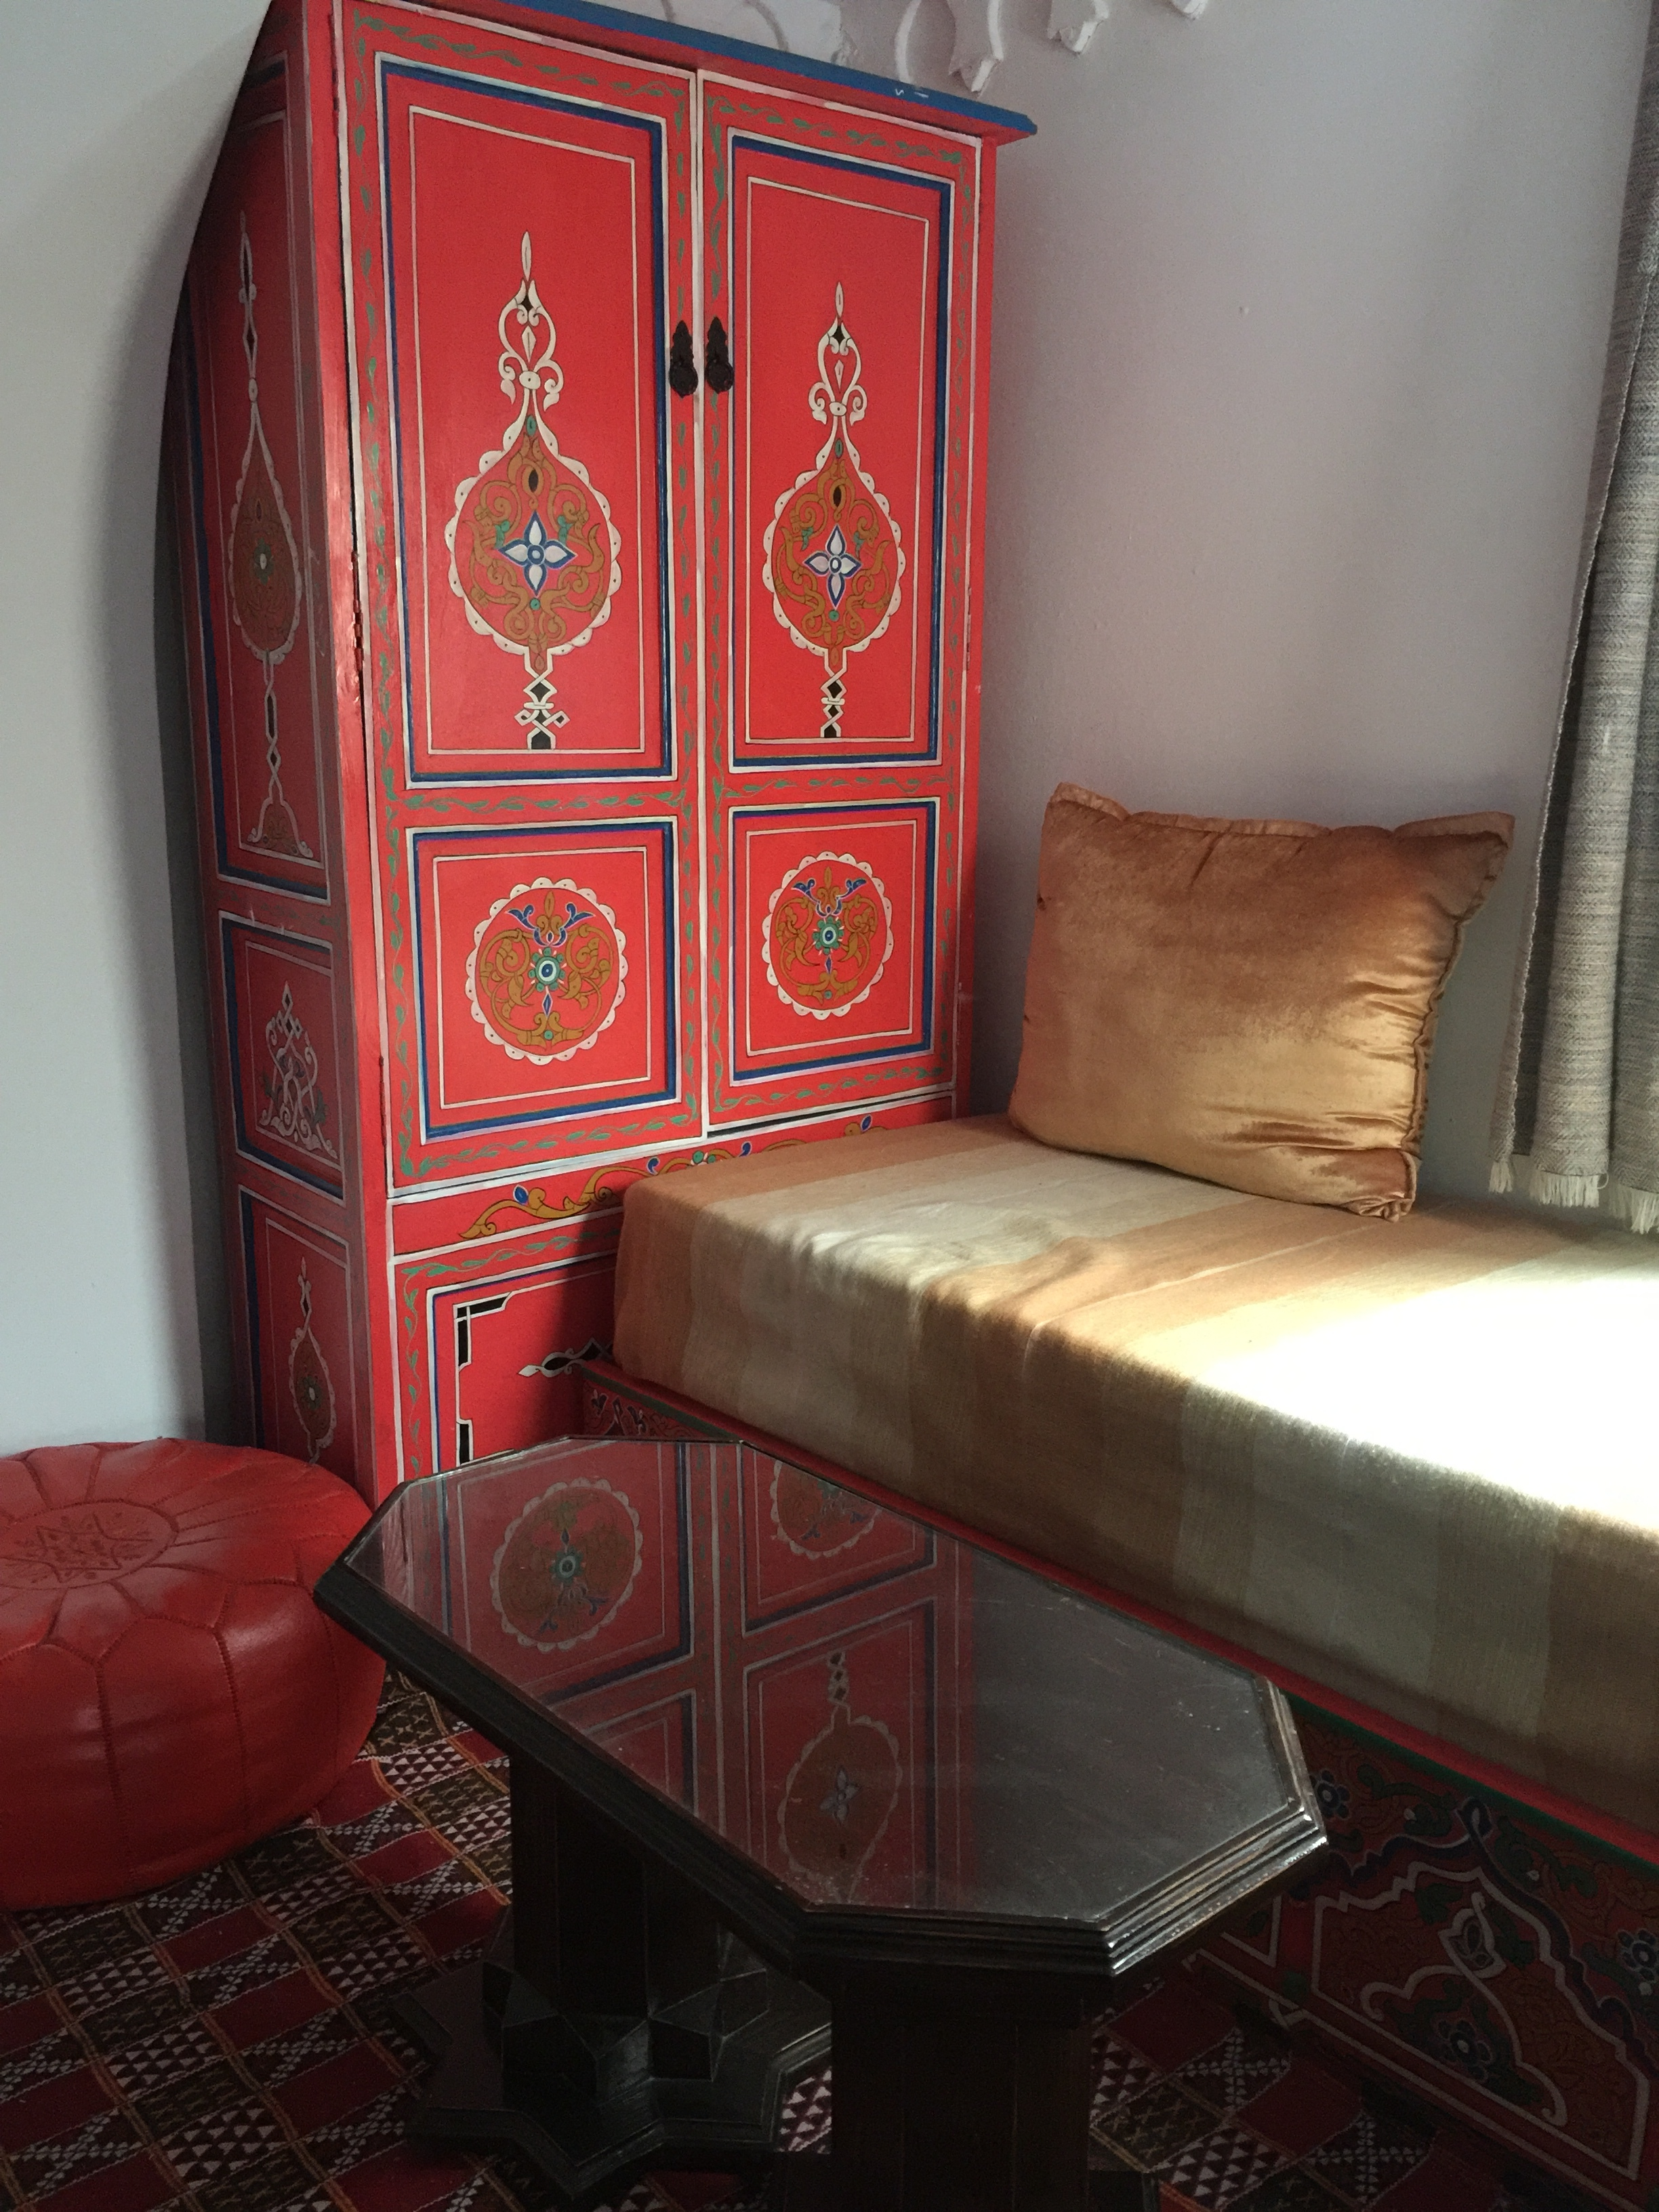 This cozy window nook at our place in Chefchaouen made for a great respite when wanting to retreat indoors.